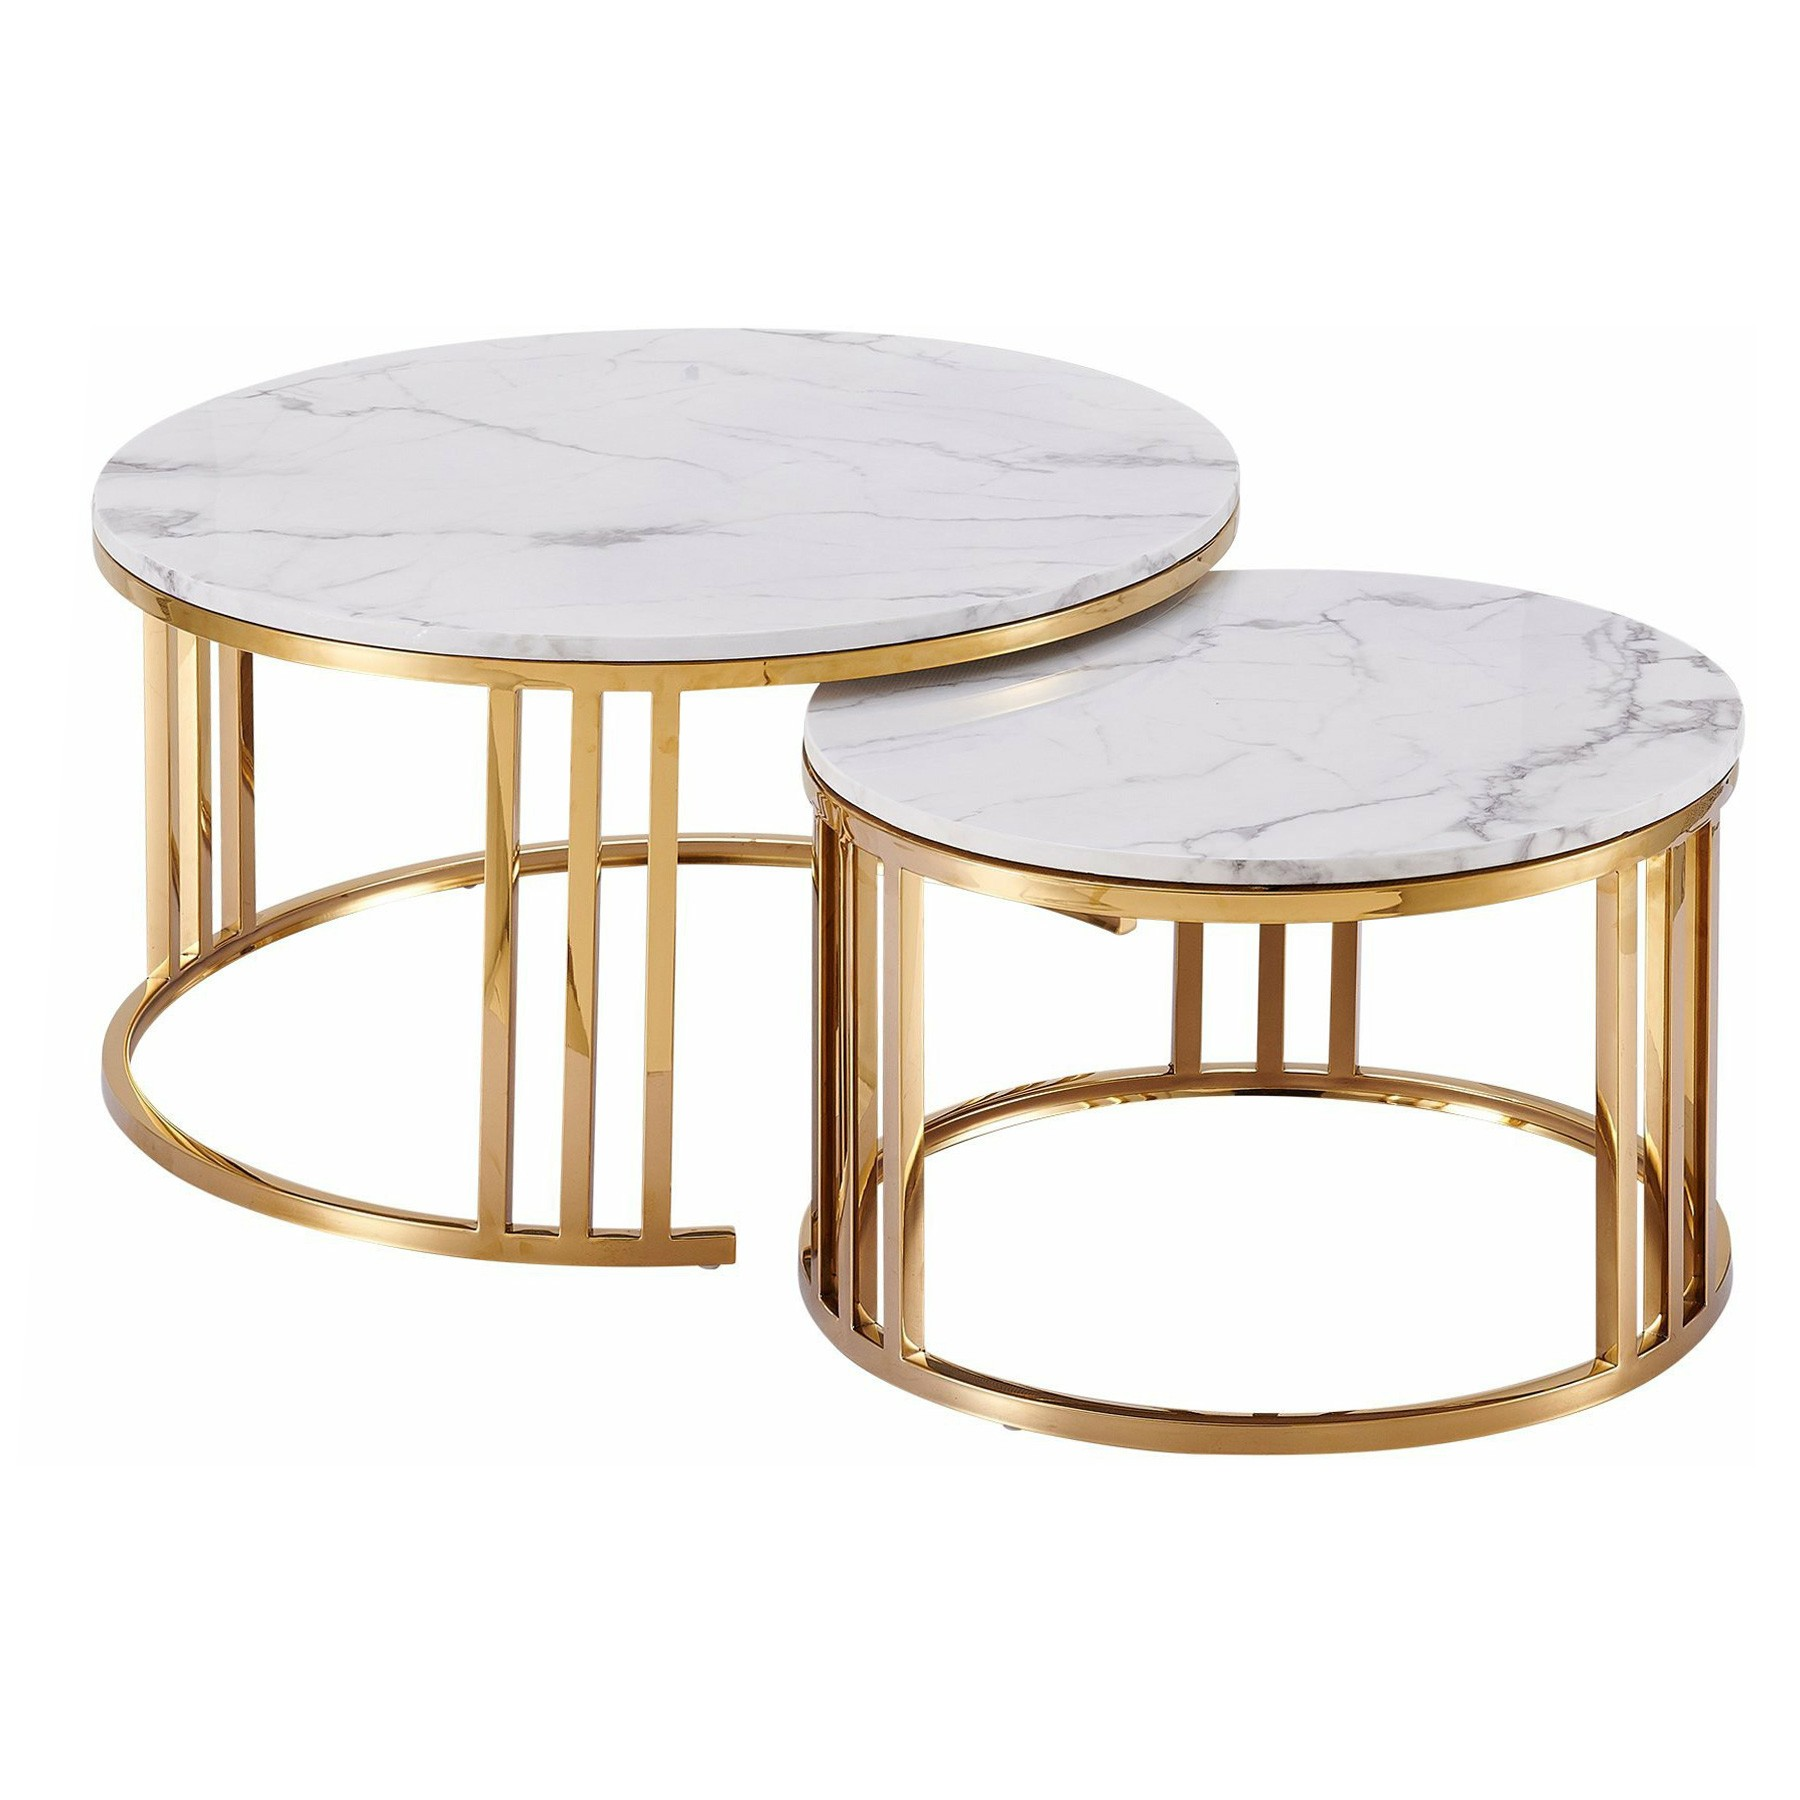 Lula 2 Piece Marblite & Metal Nested Round Coffee Table Set, 80/60cm, White / Gold